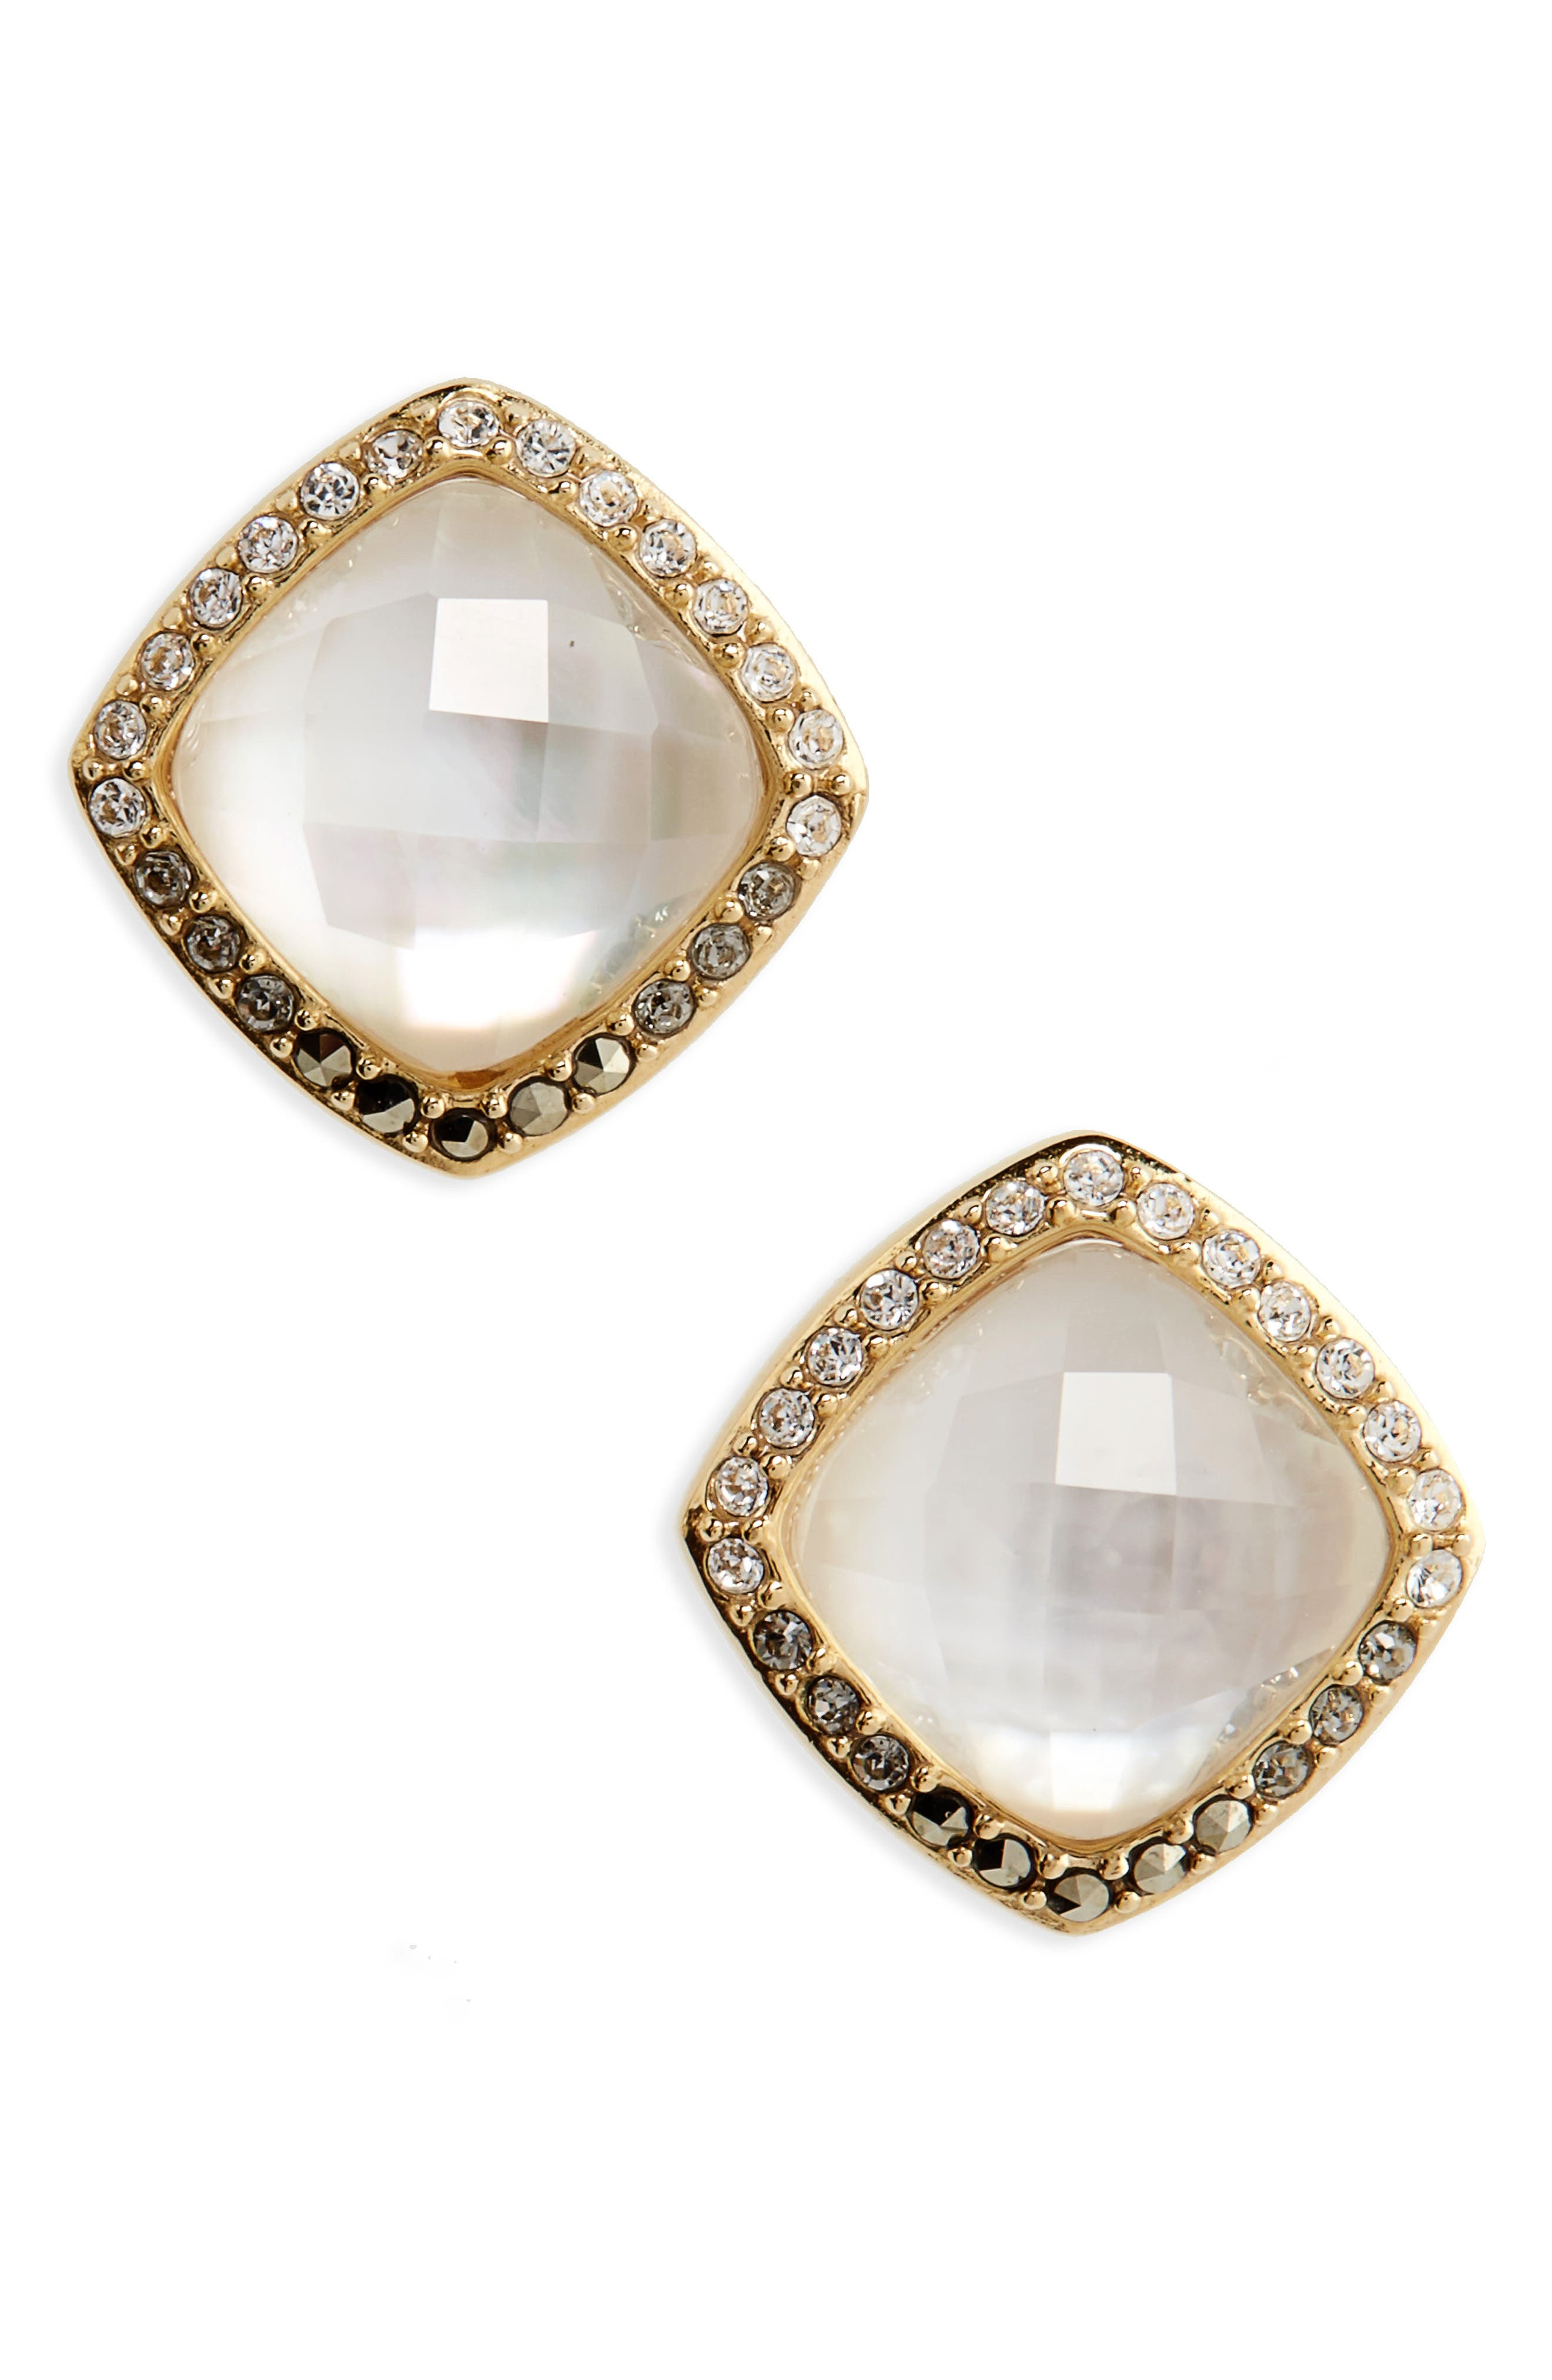 Judith Jack Tropical Touches Doublet Stud Earrings